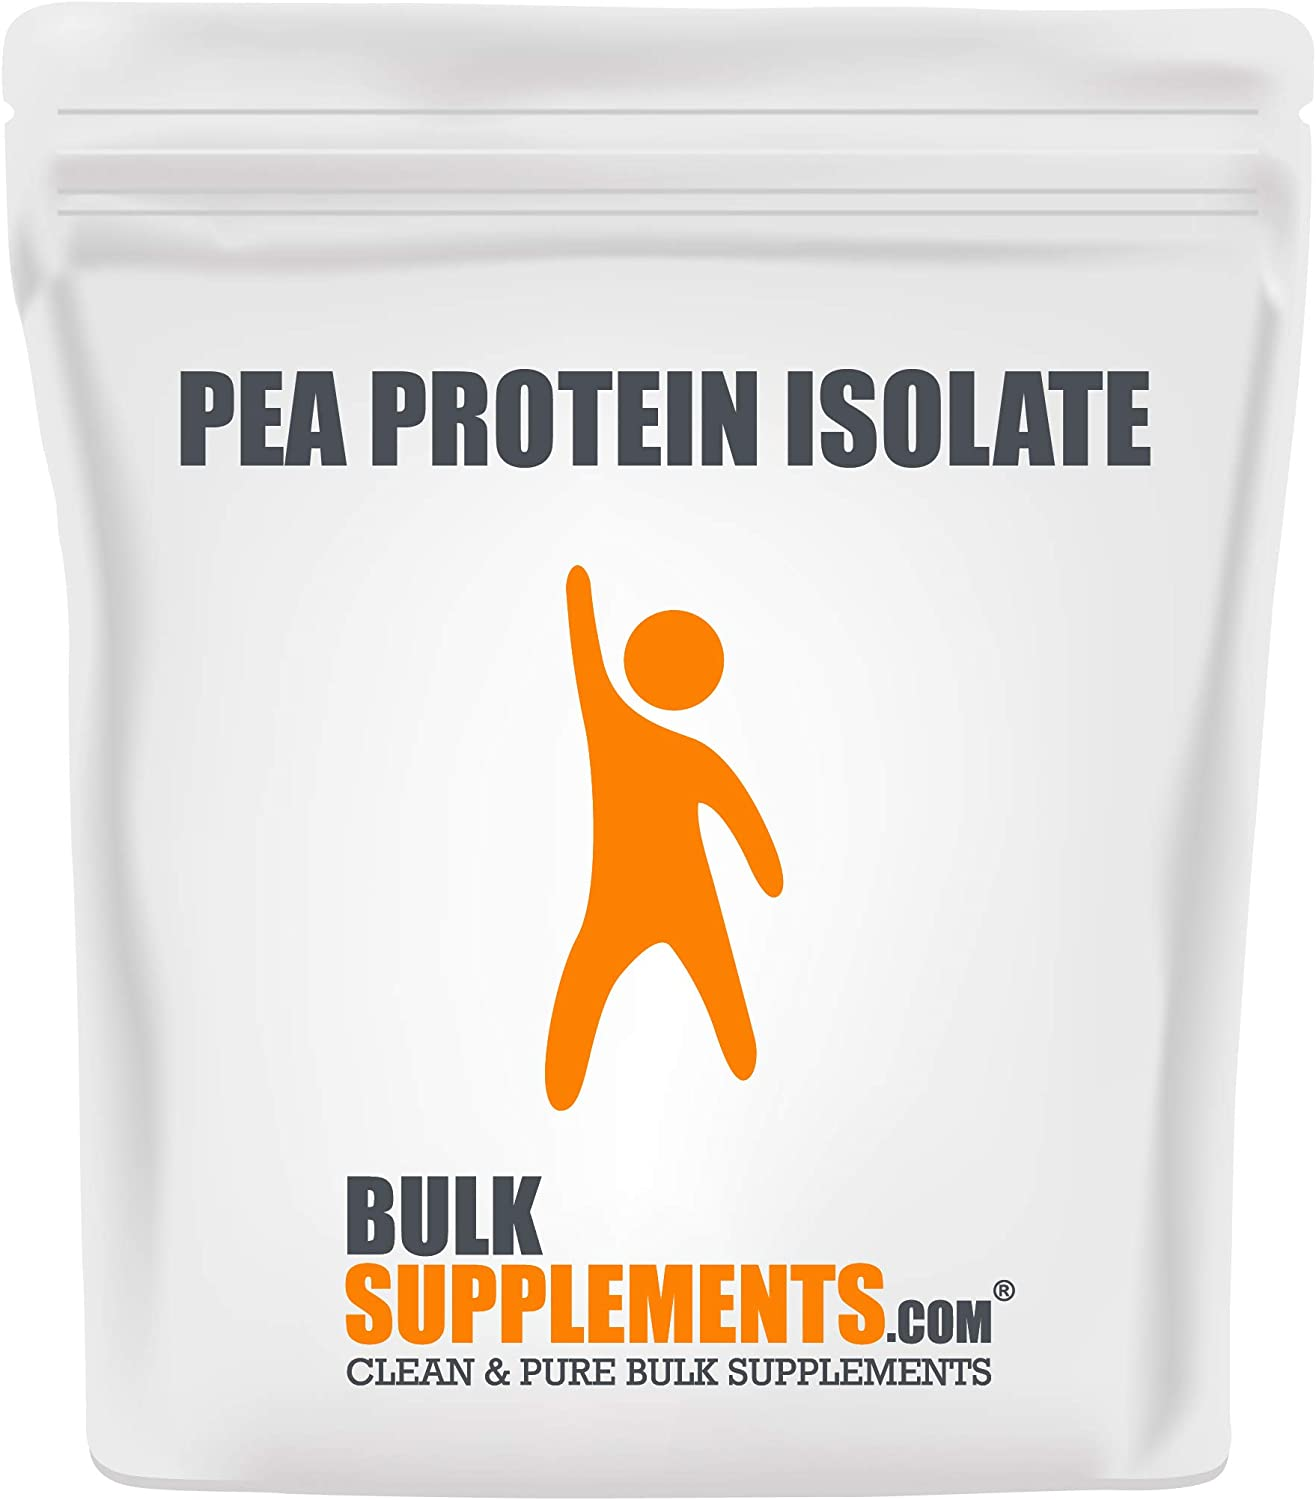 BulkSupplements.com Pea Protein Isolate Powder New life - Vegan All items free shipping